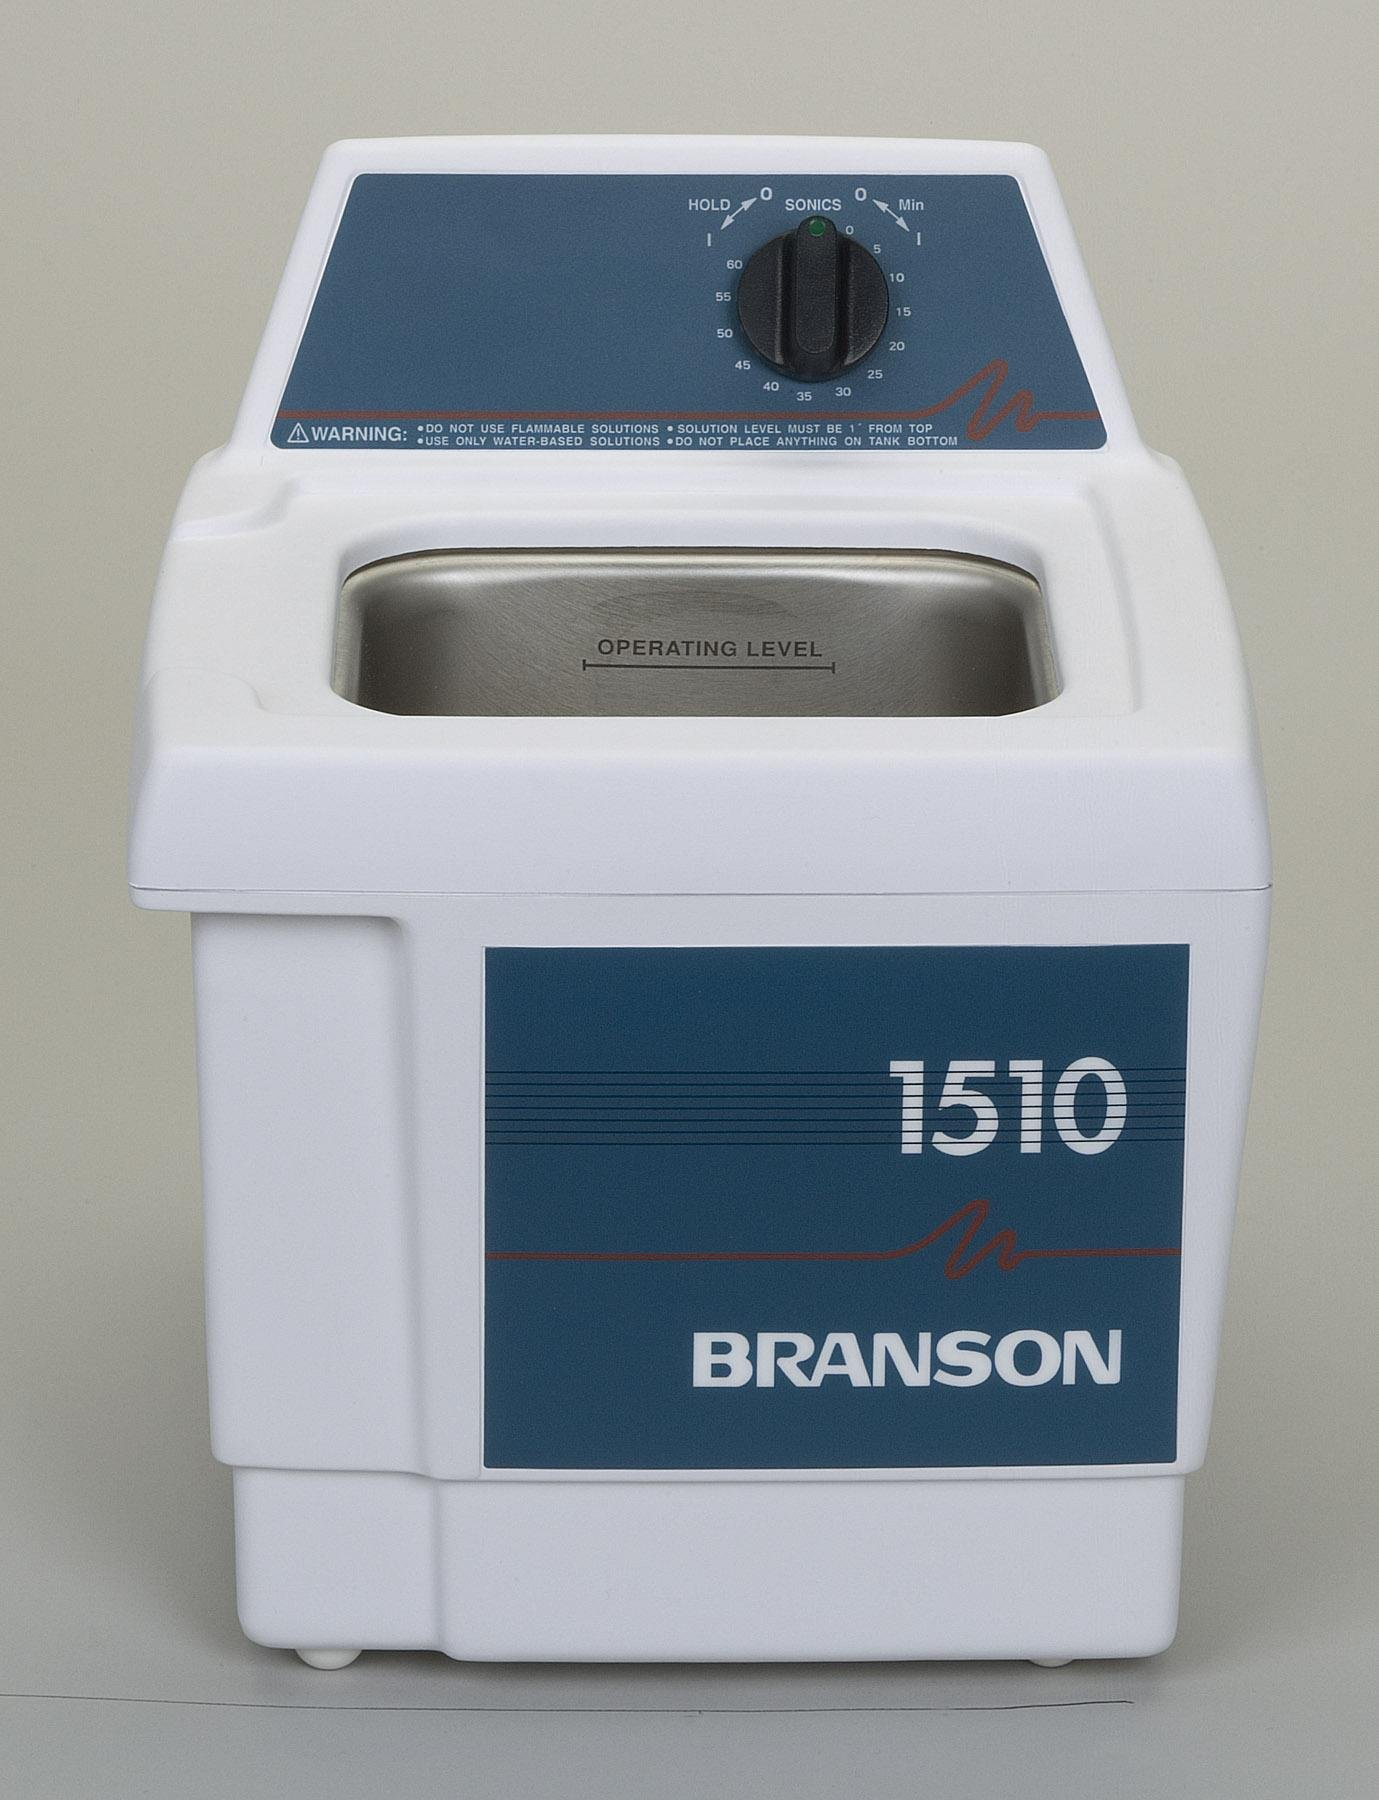 Bransonic B1510 Mechanical Timer and Heater Ultrasonic Cleaner With 0.5 Gallon Tank